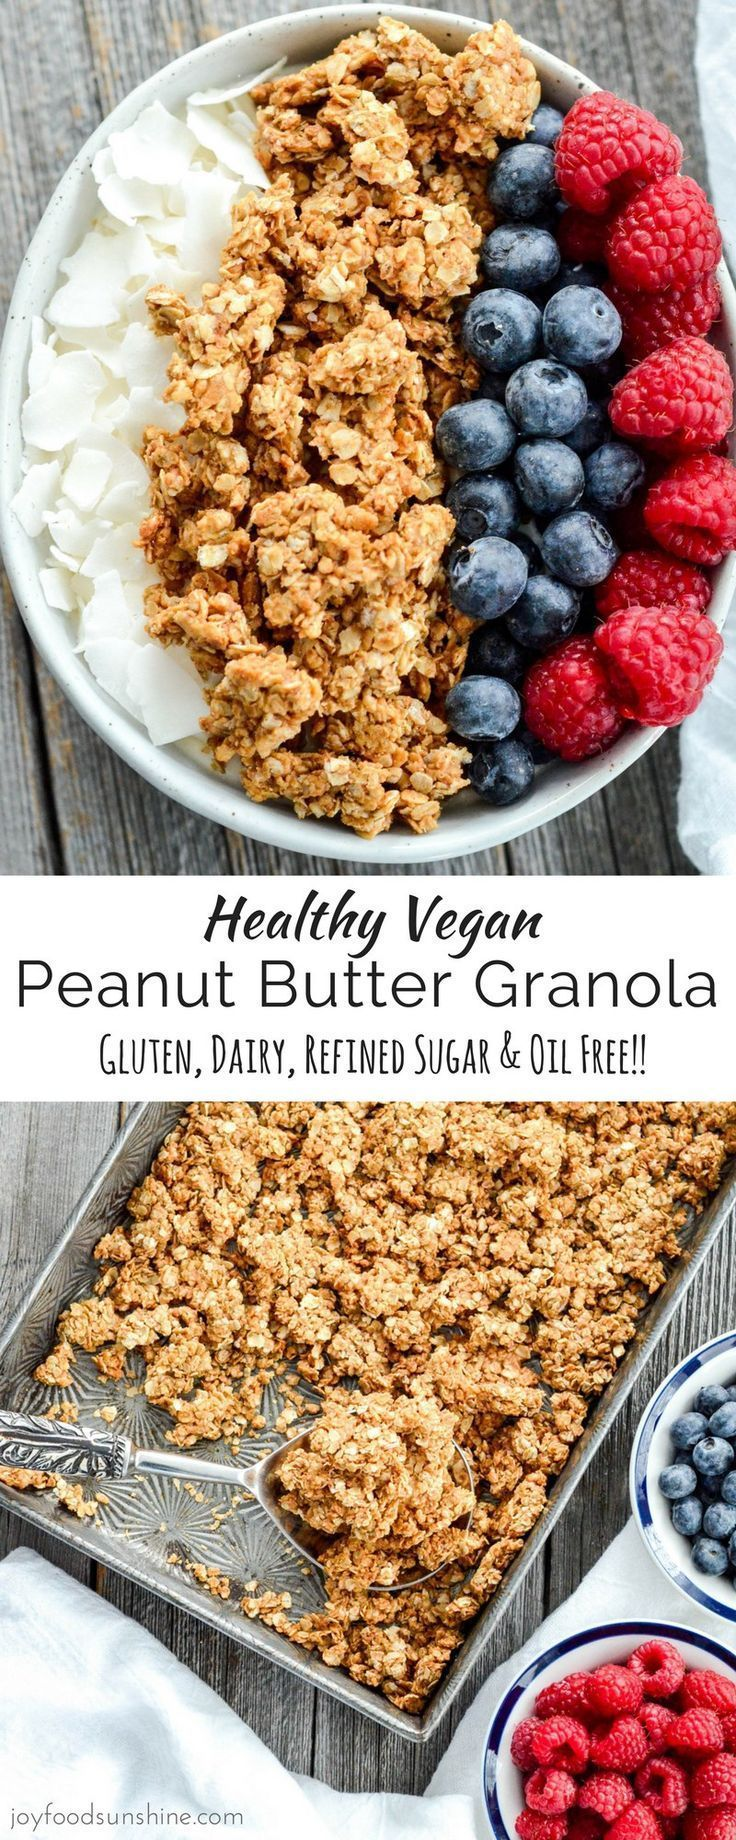 This Healthy Peanut Butter Granola is the perfect make-ahead breakfast recipe! With only 6 ingredients it's so easy to make! Gluten-free, dairy-free, refined sugar free, oil free and vegan! Healthy Peanut Butter Granola is the perfect make-ahead breakfast recipe! With only 6 ingredients it's so easy to make! Gluten-free, dairy-free, refined sugar free, oil free and vegan!